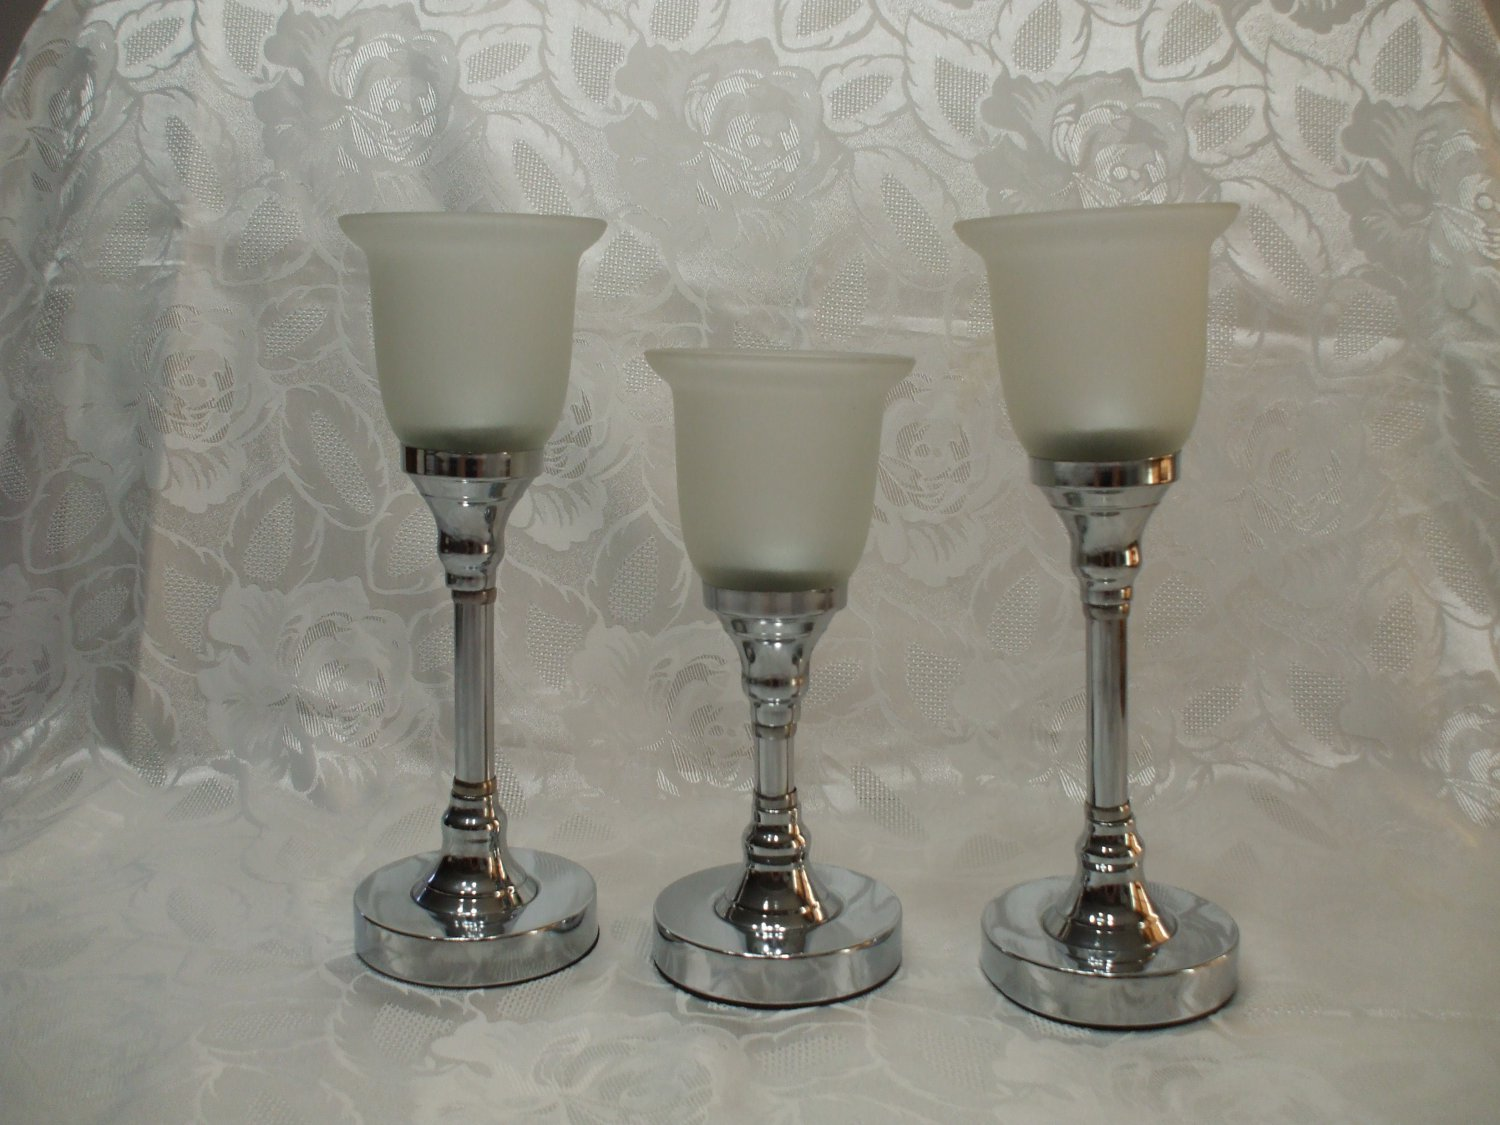 3 Candle Holders With Thick Frosted Glass